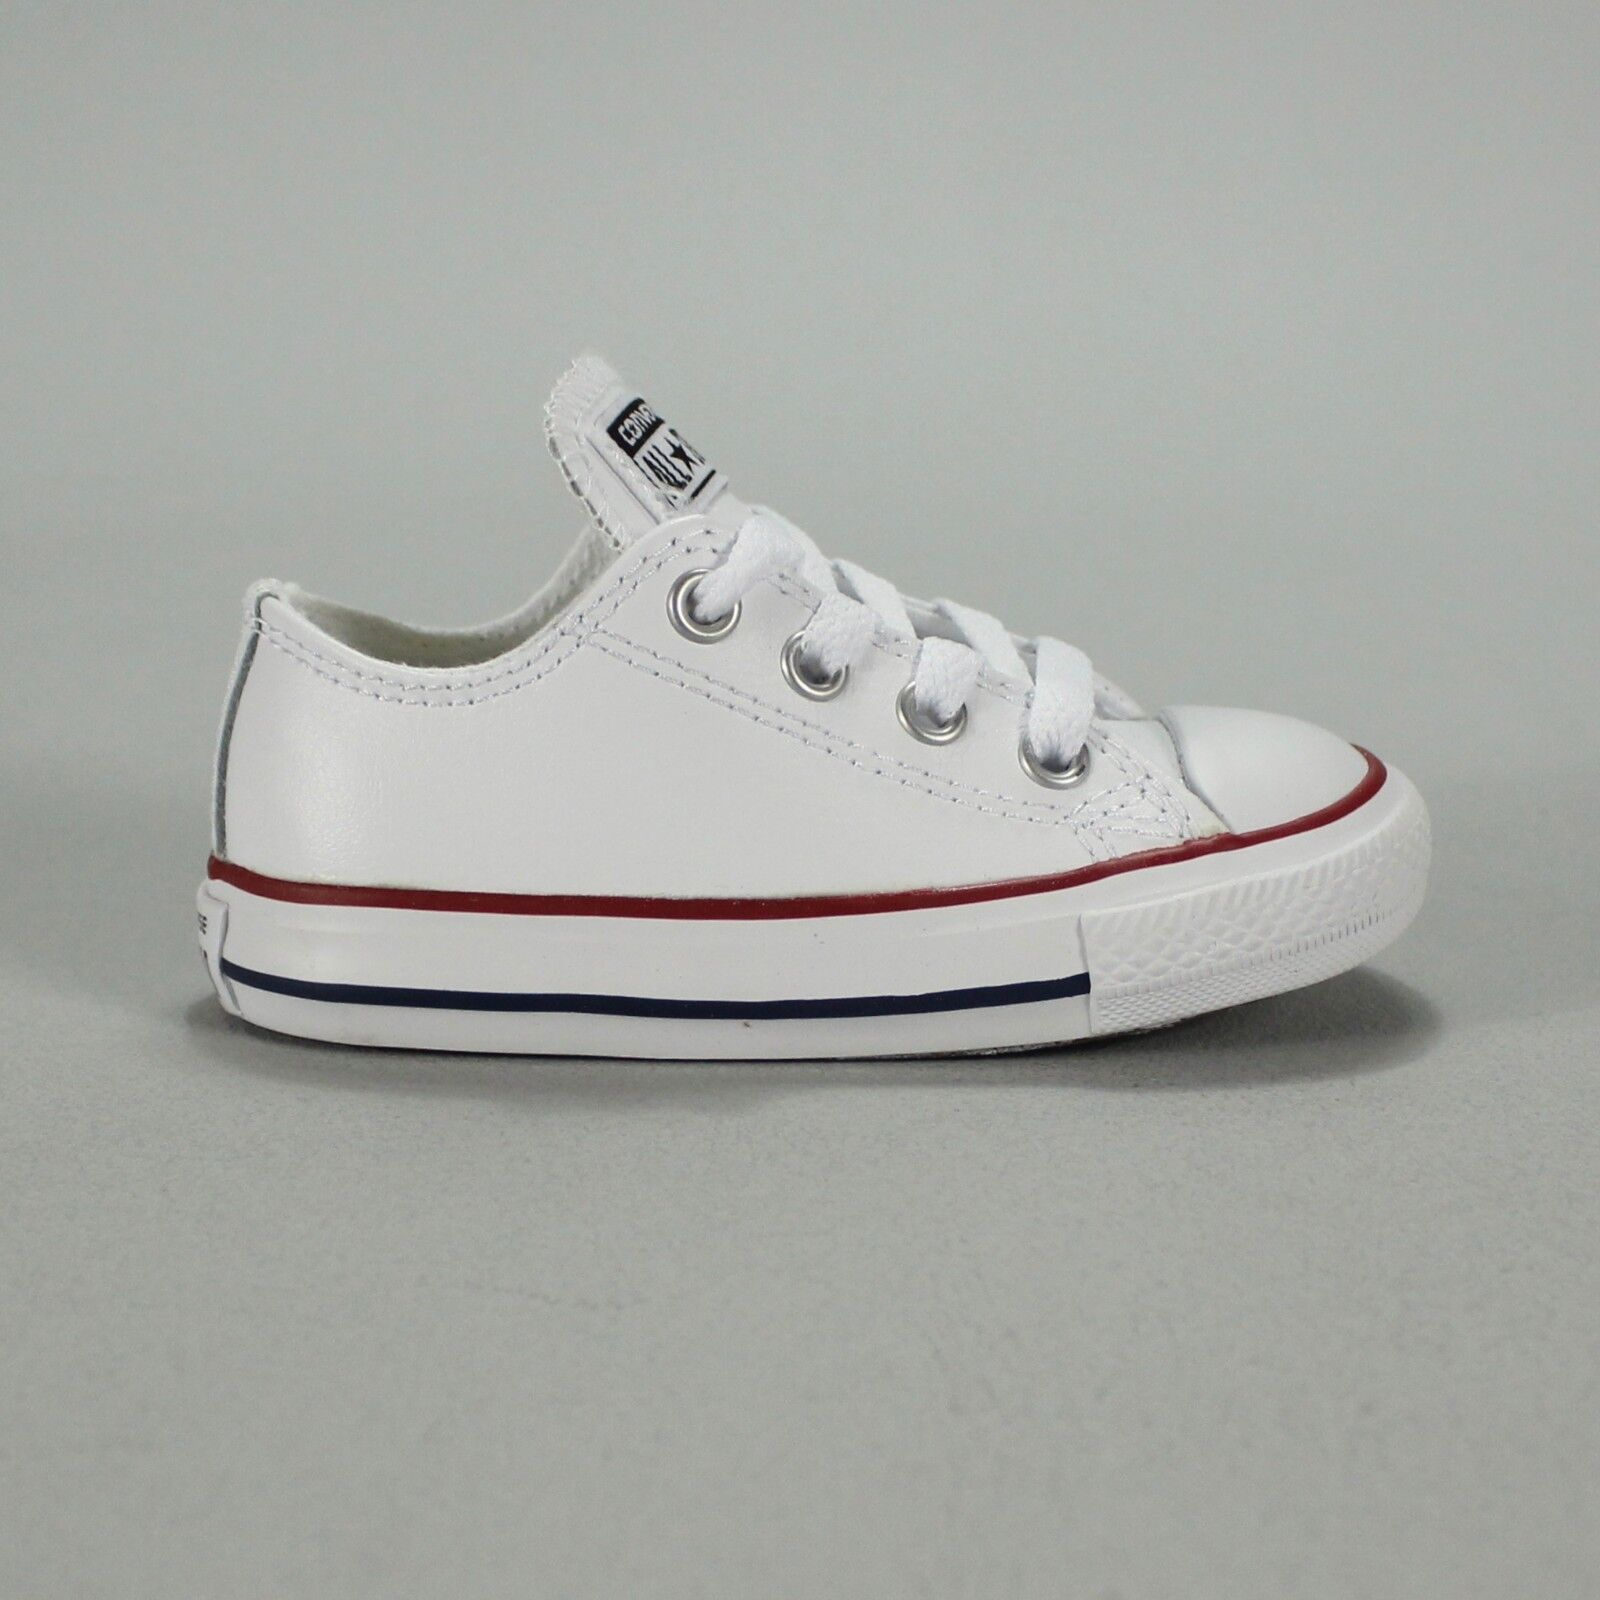 ec169698238802 Details about Converse Toddlers Infants Trainer Leather White Size  2